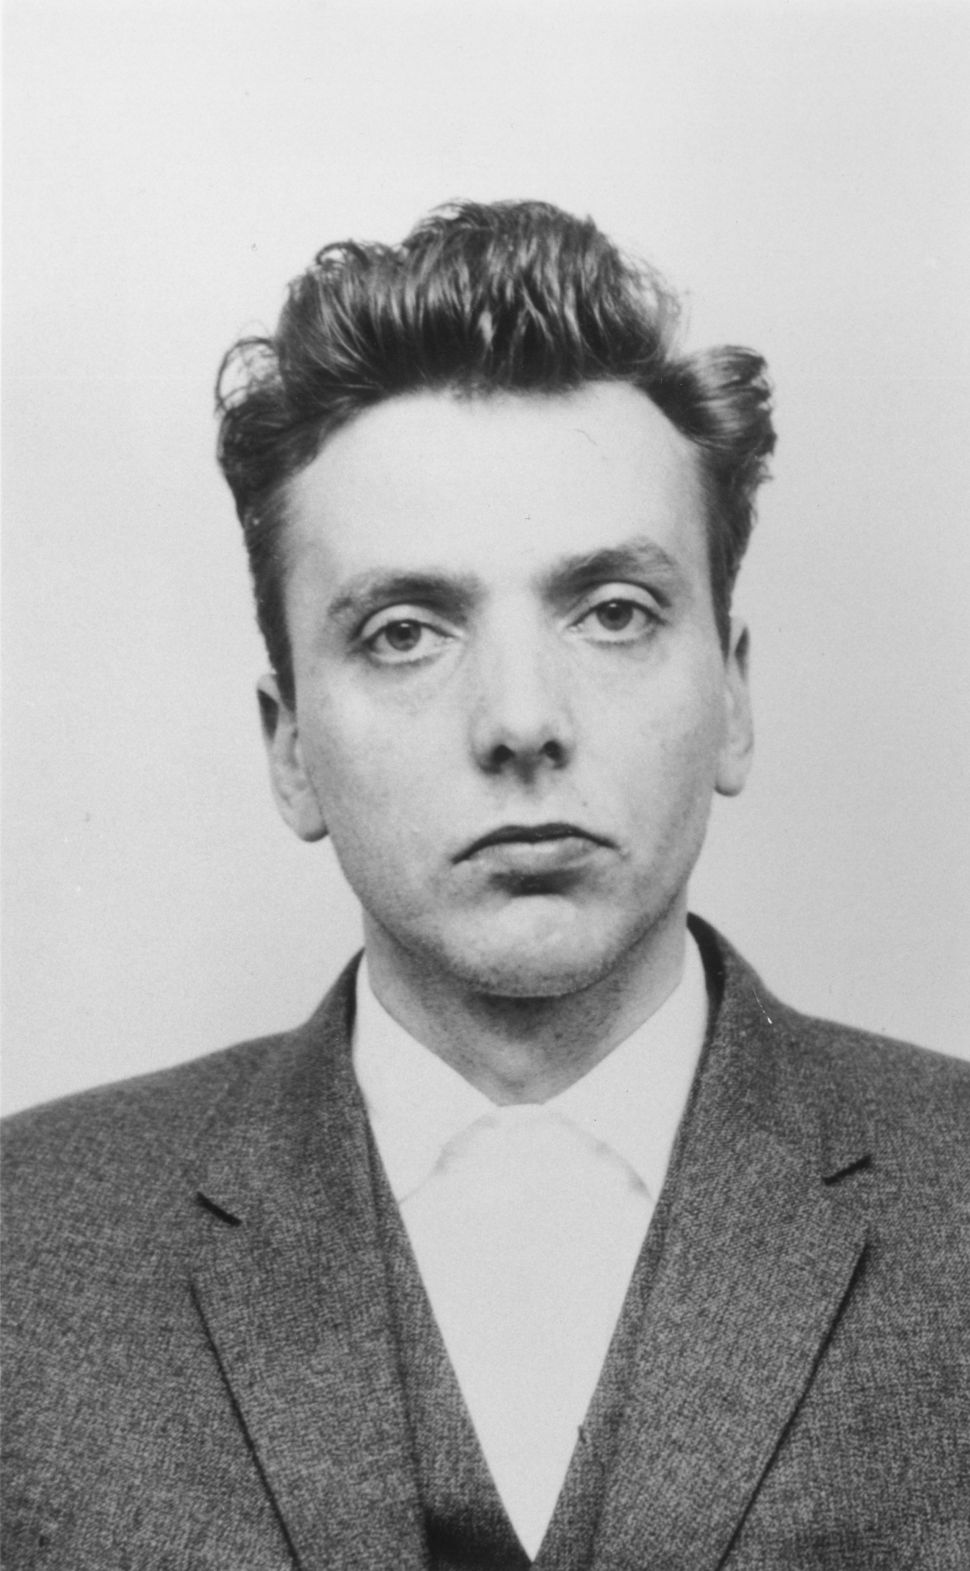 Serial Killer Ian Brady Should Have Been Tortured to Reveal Victim's Grave